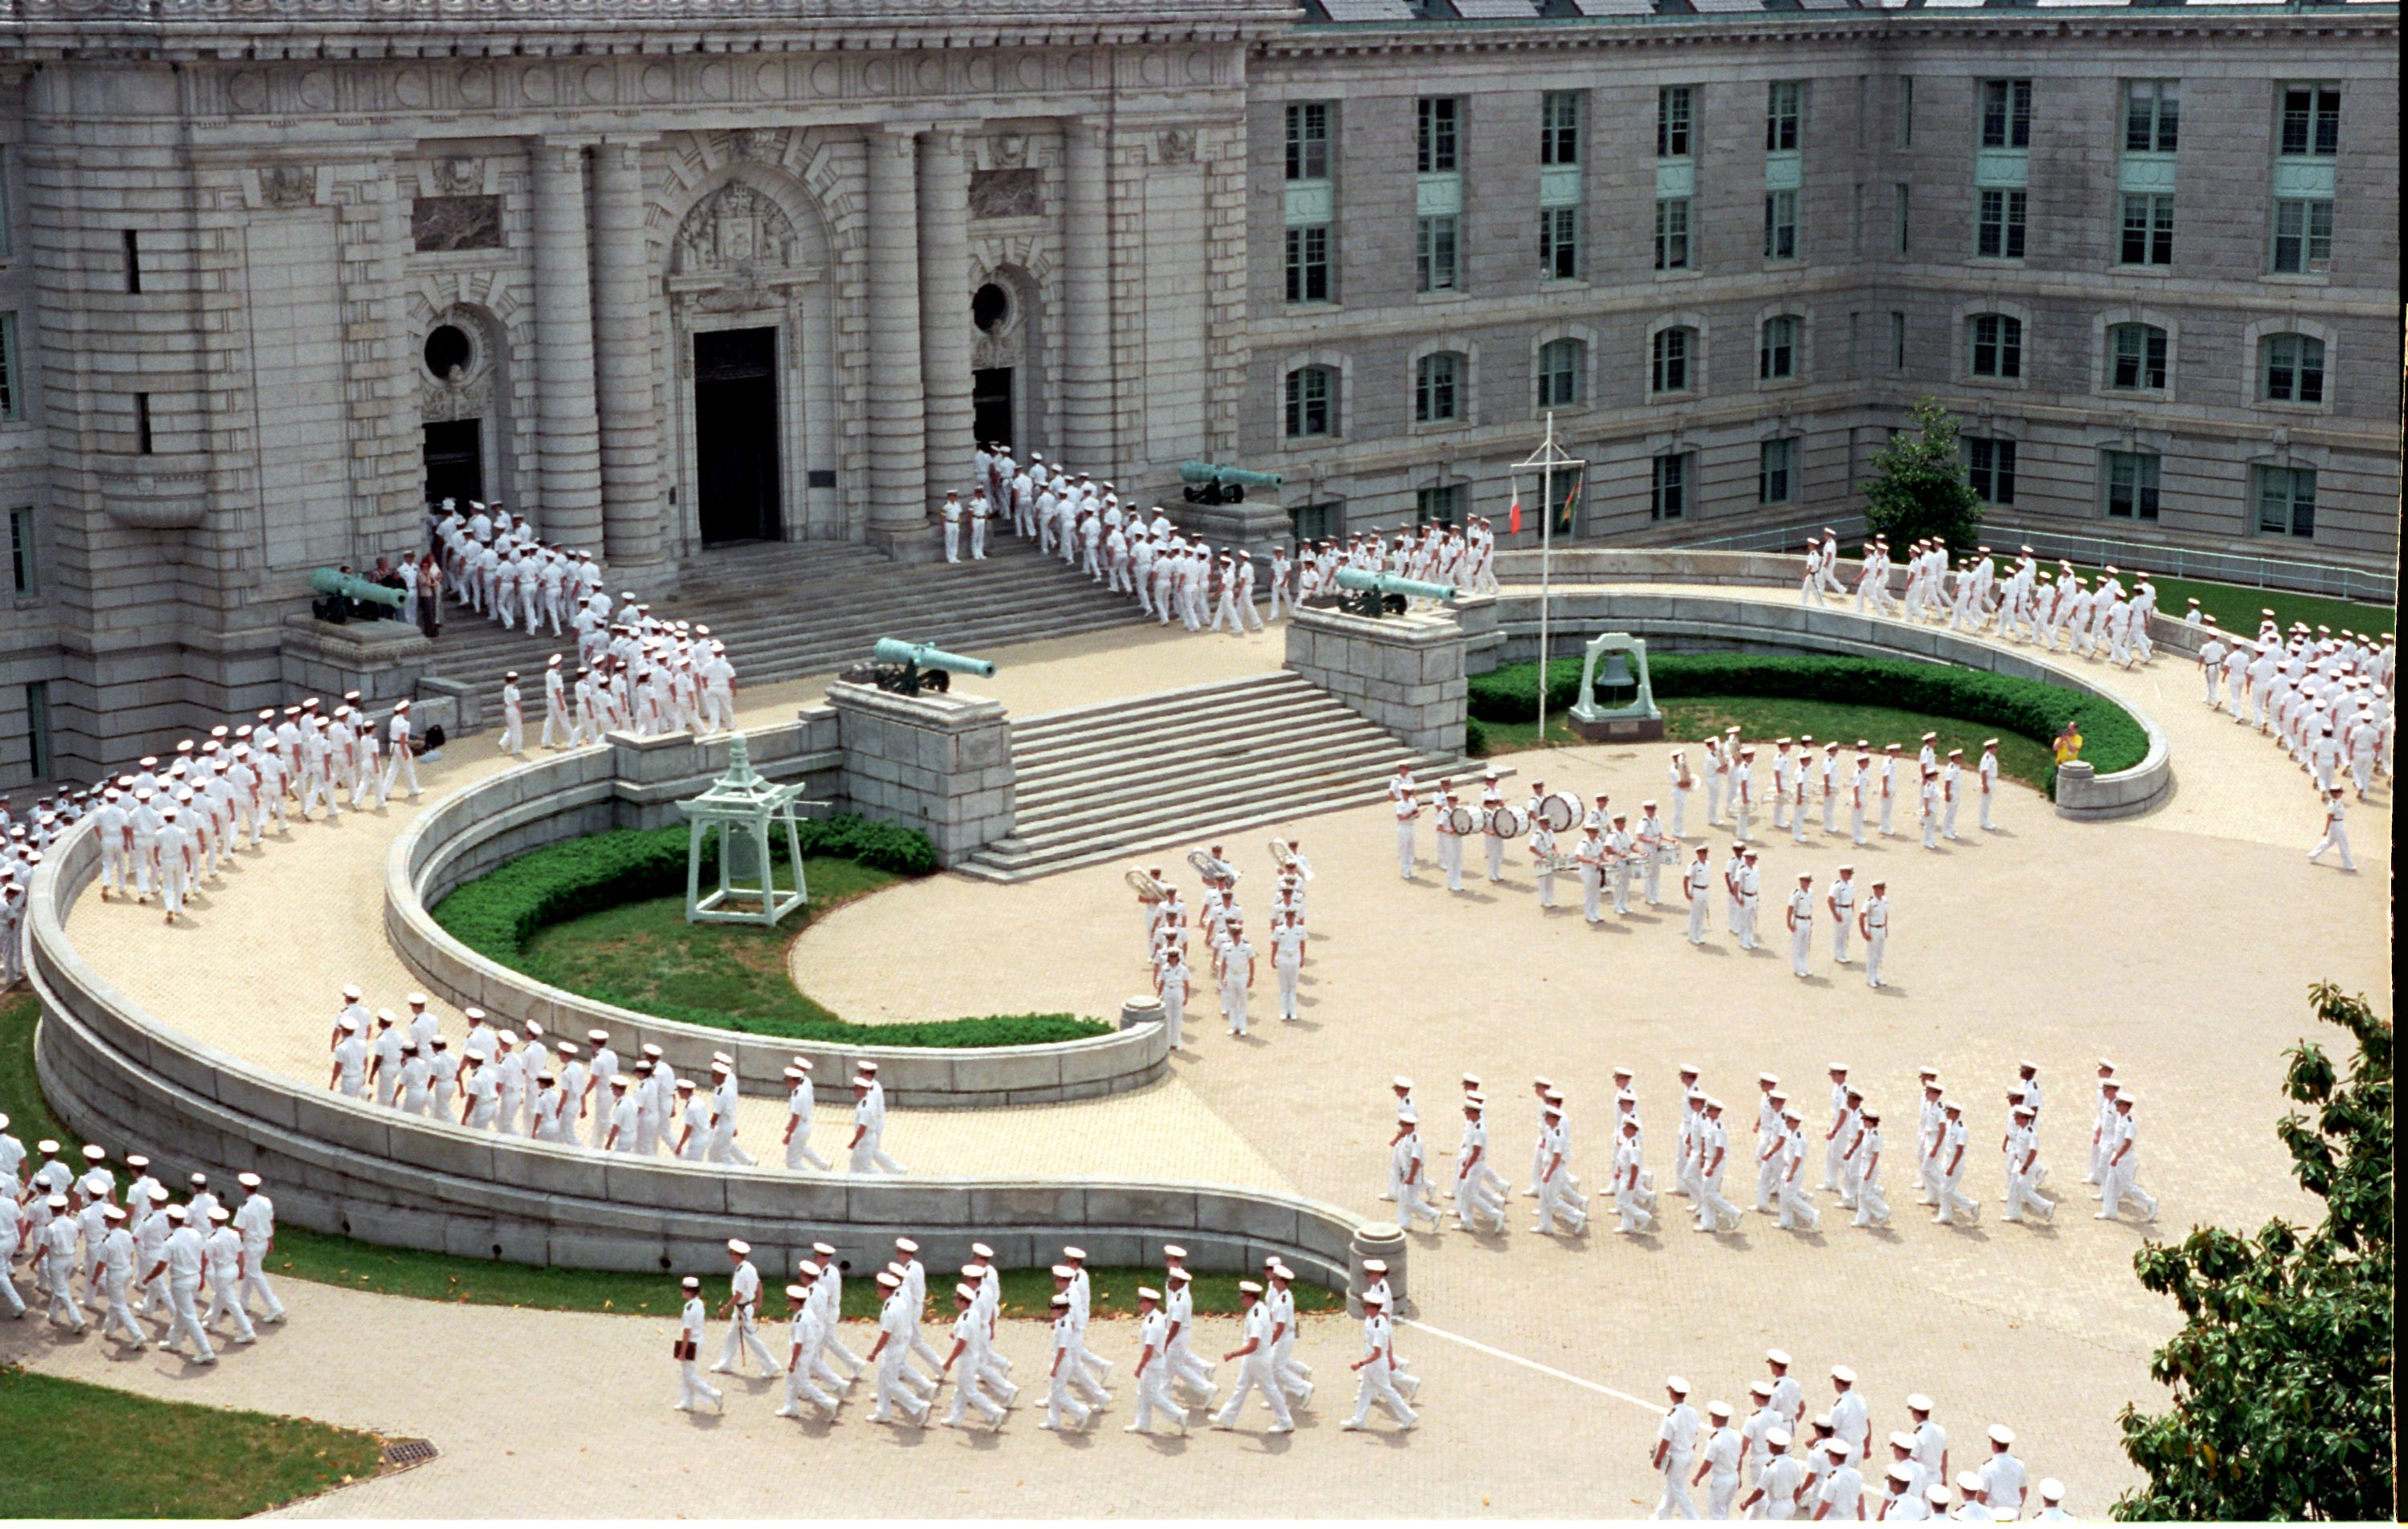 The united states naval academy annapolis md my two oldest boys went there in it was awesome third son didn t want to go